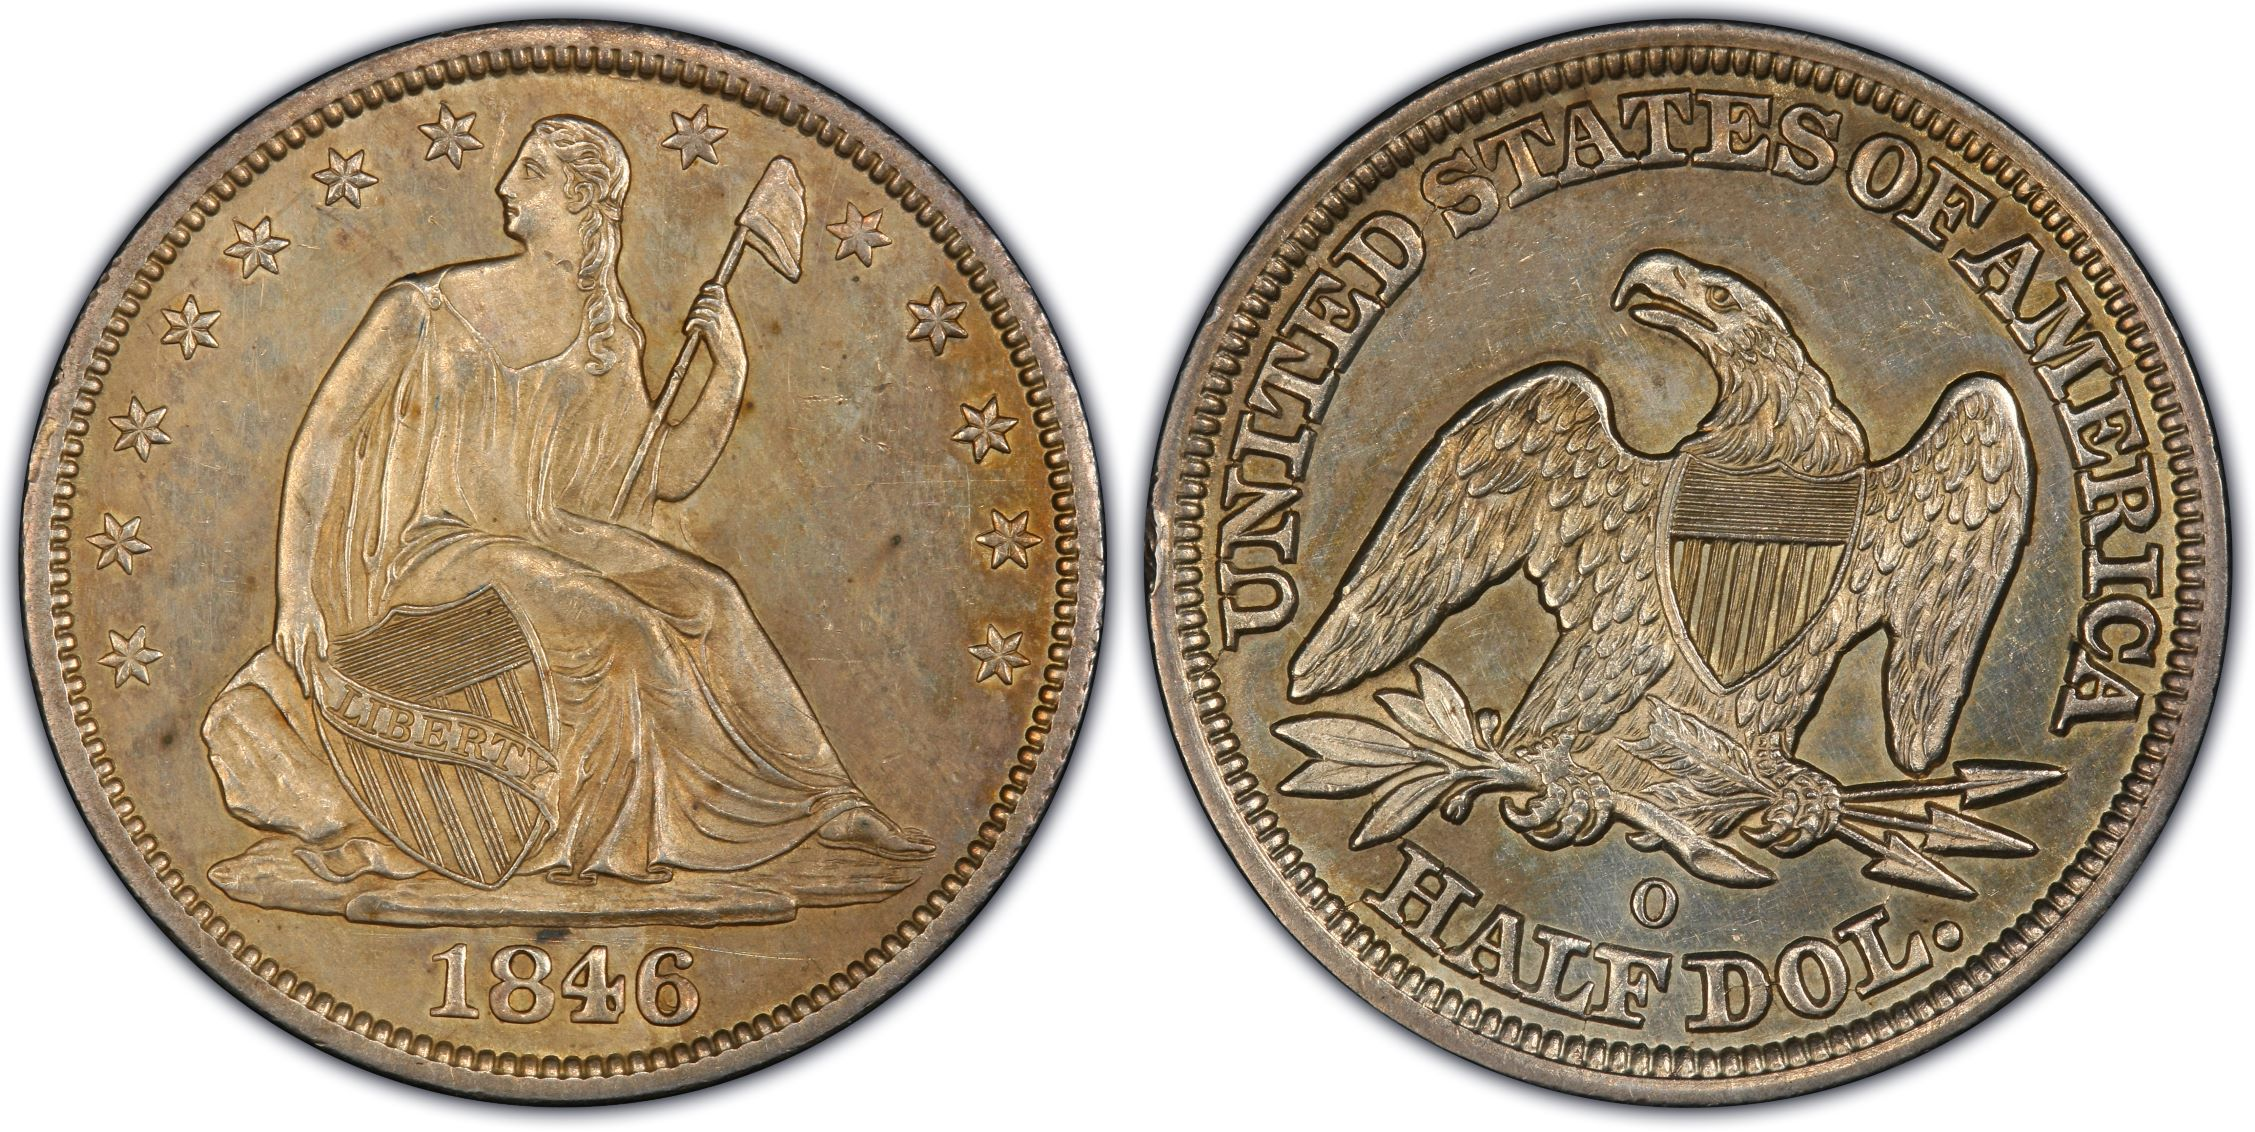 GFRC Open Set Registry - J B N 1846 Seated  50C